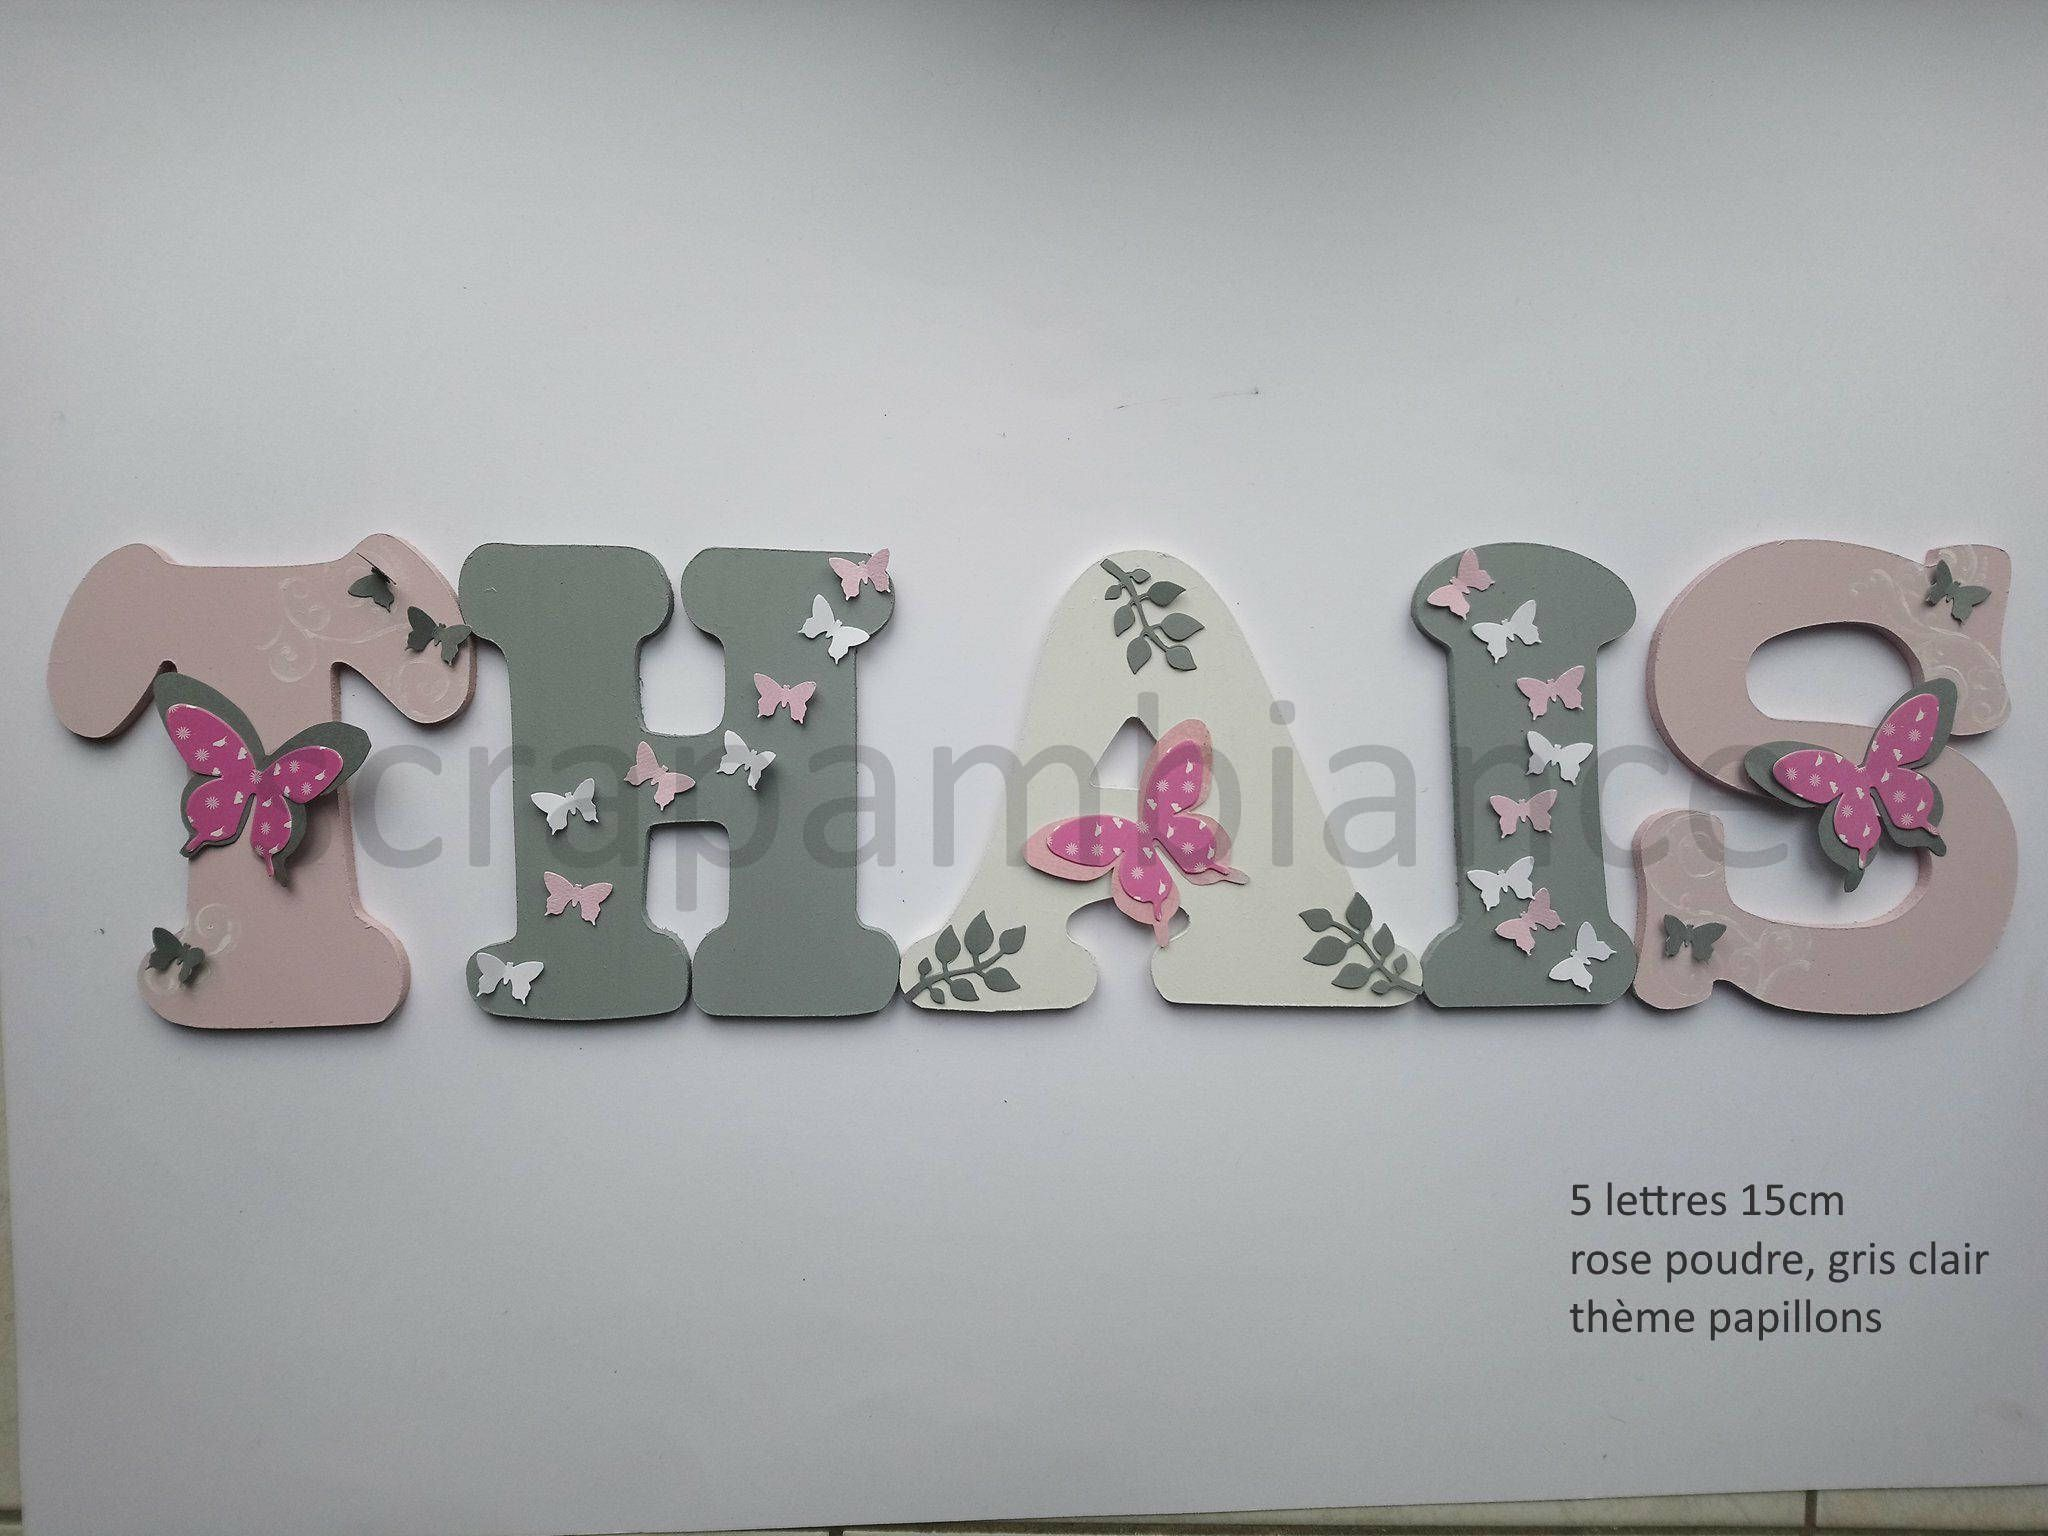 Wood Letter Name Name To Stick Wooden Name Door Letter To